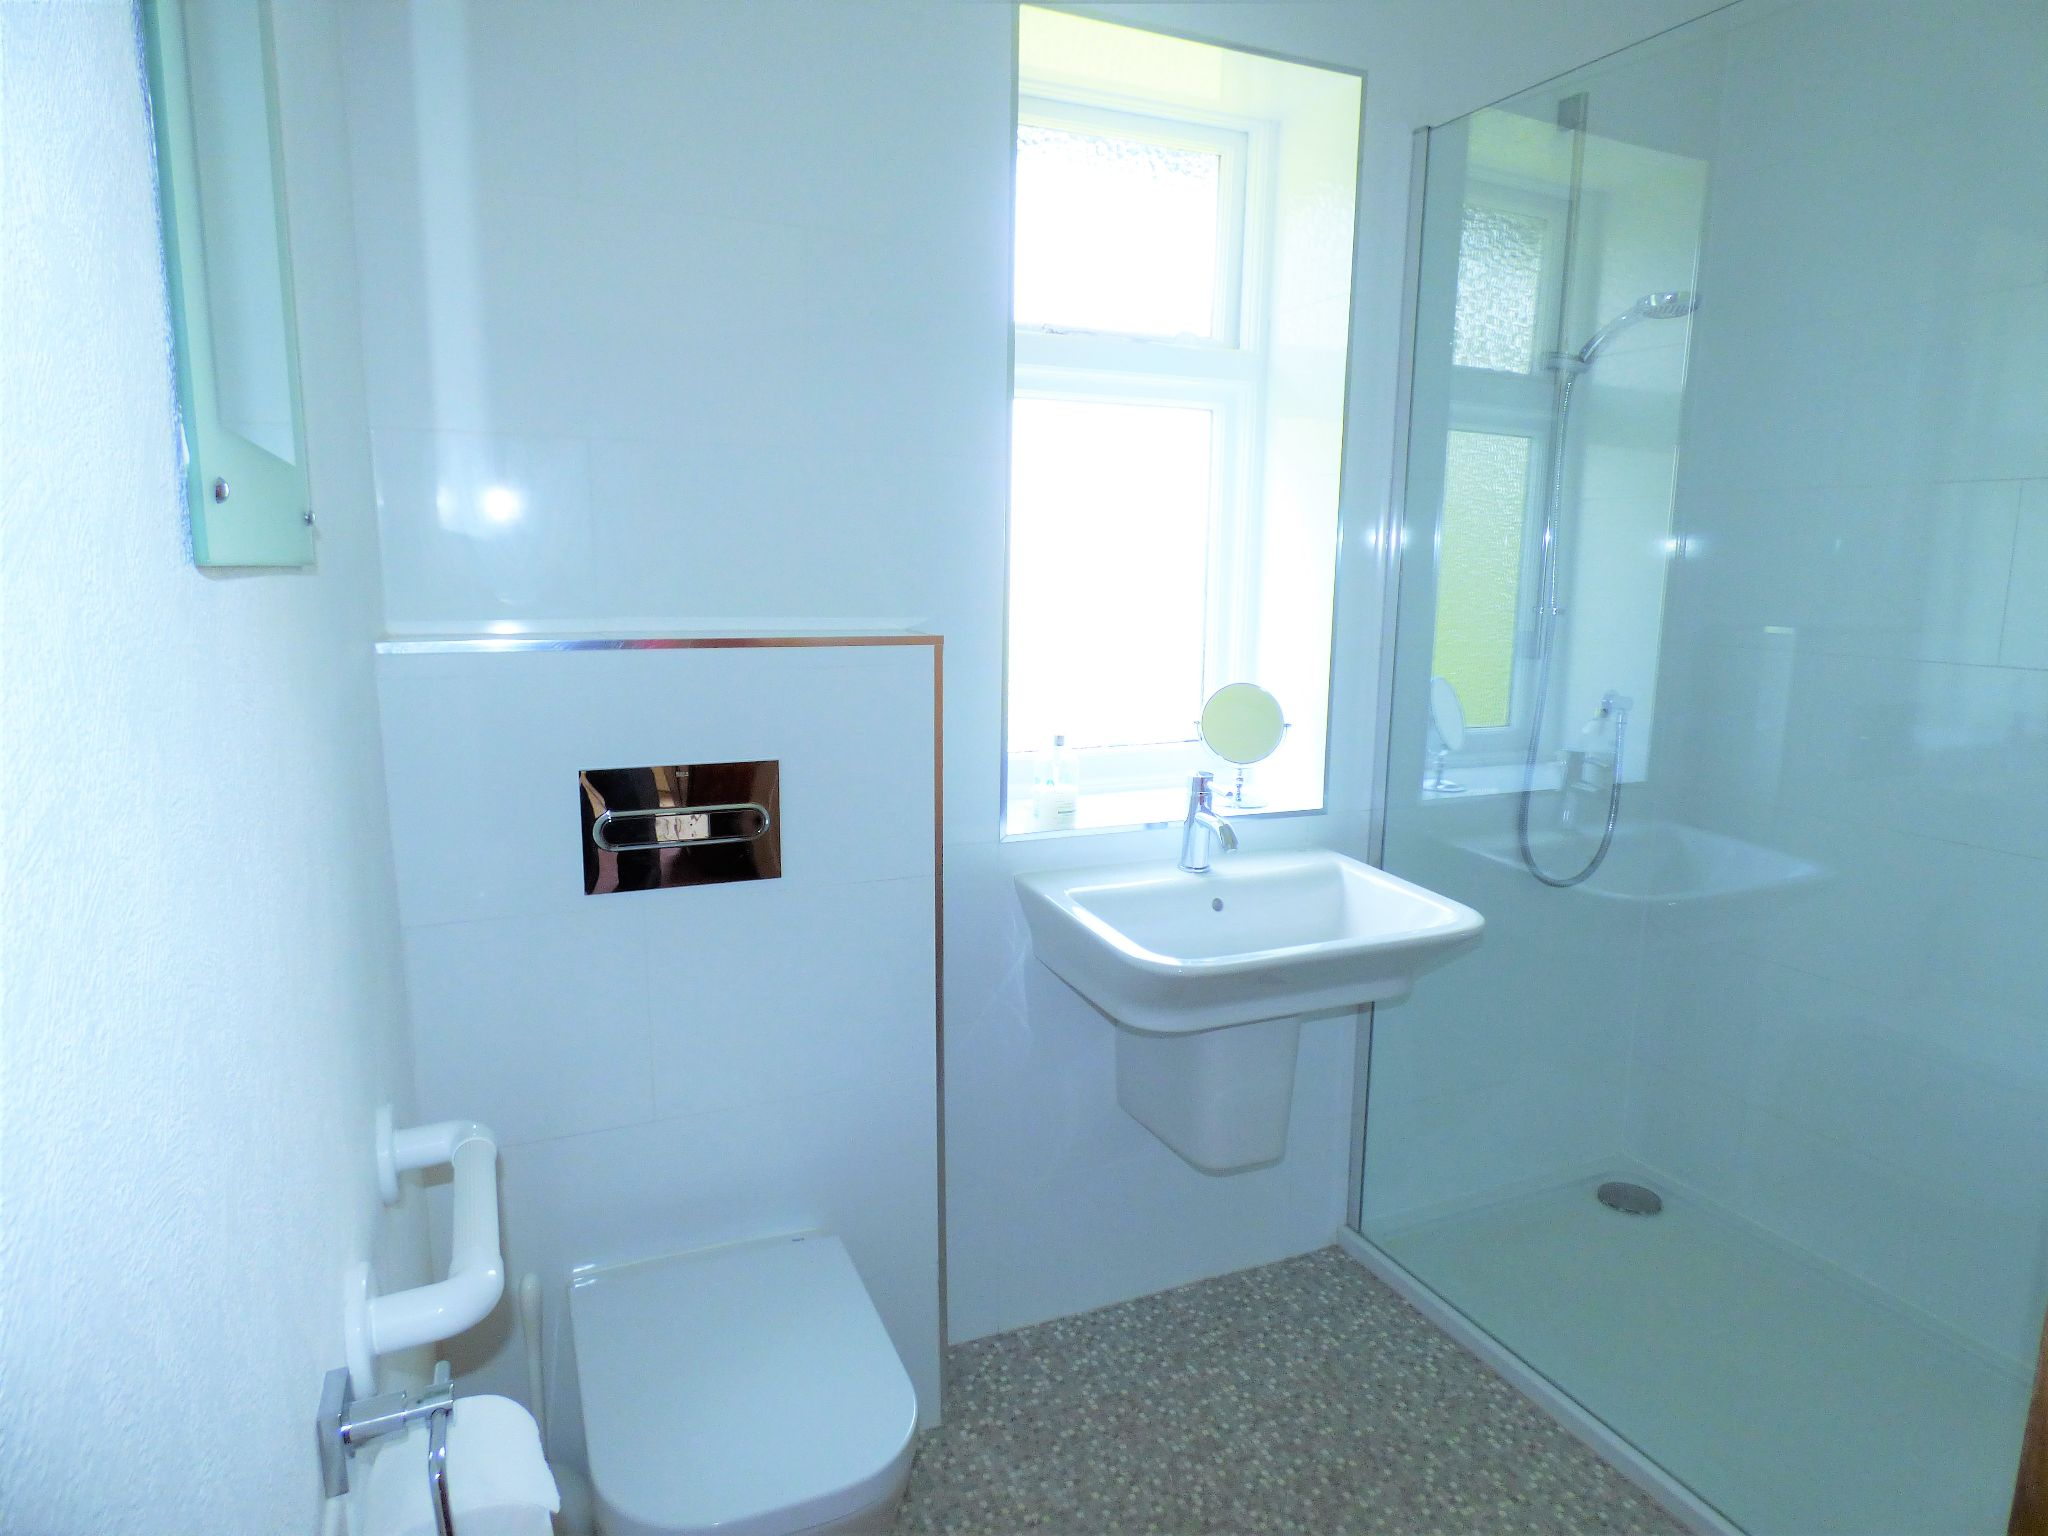 3 Bedroom Semi-detached House For Sale - Photograph 10